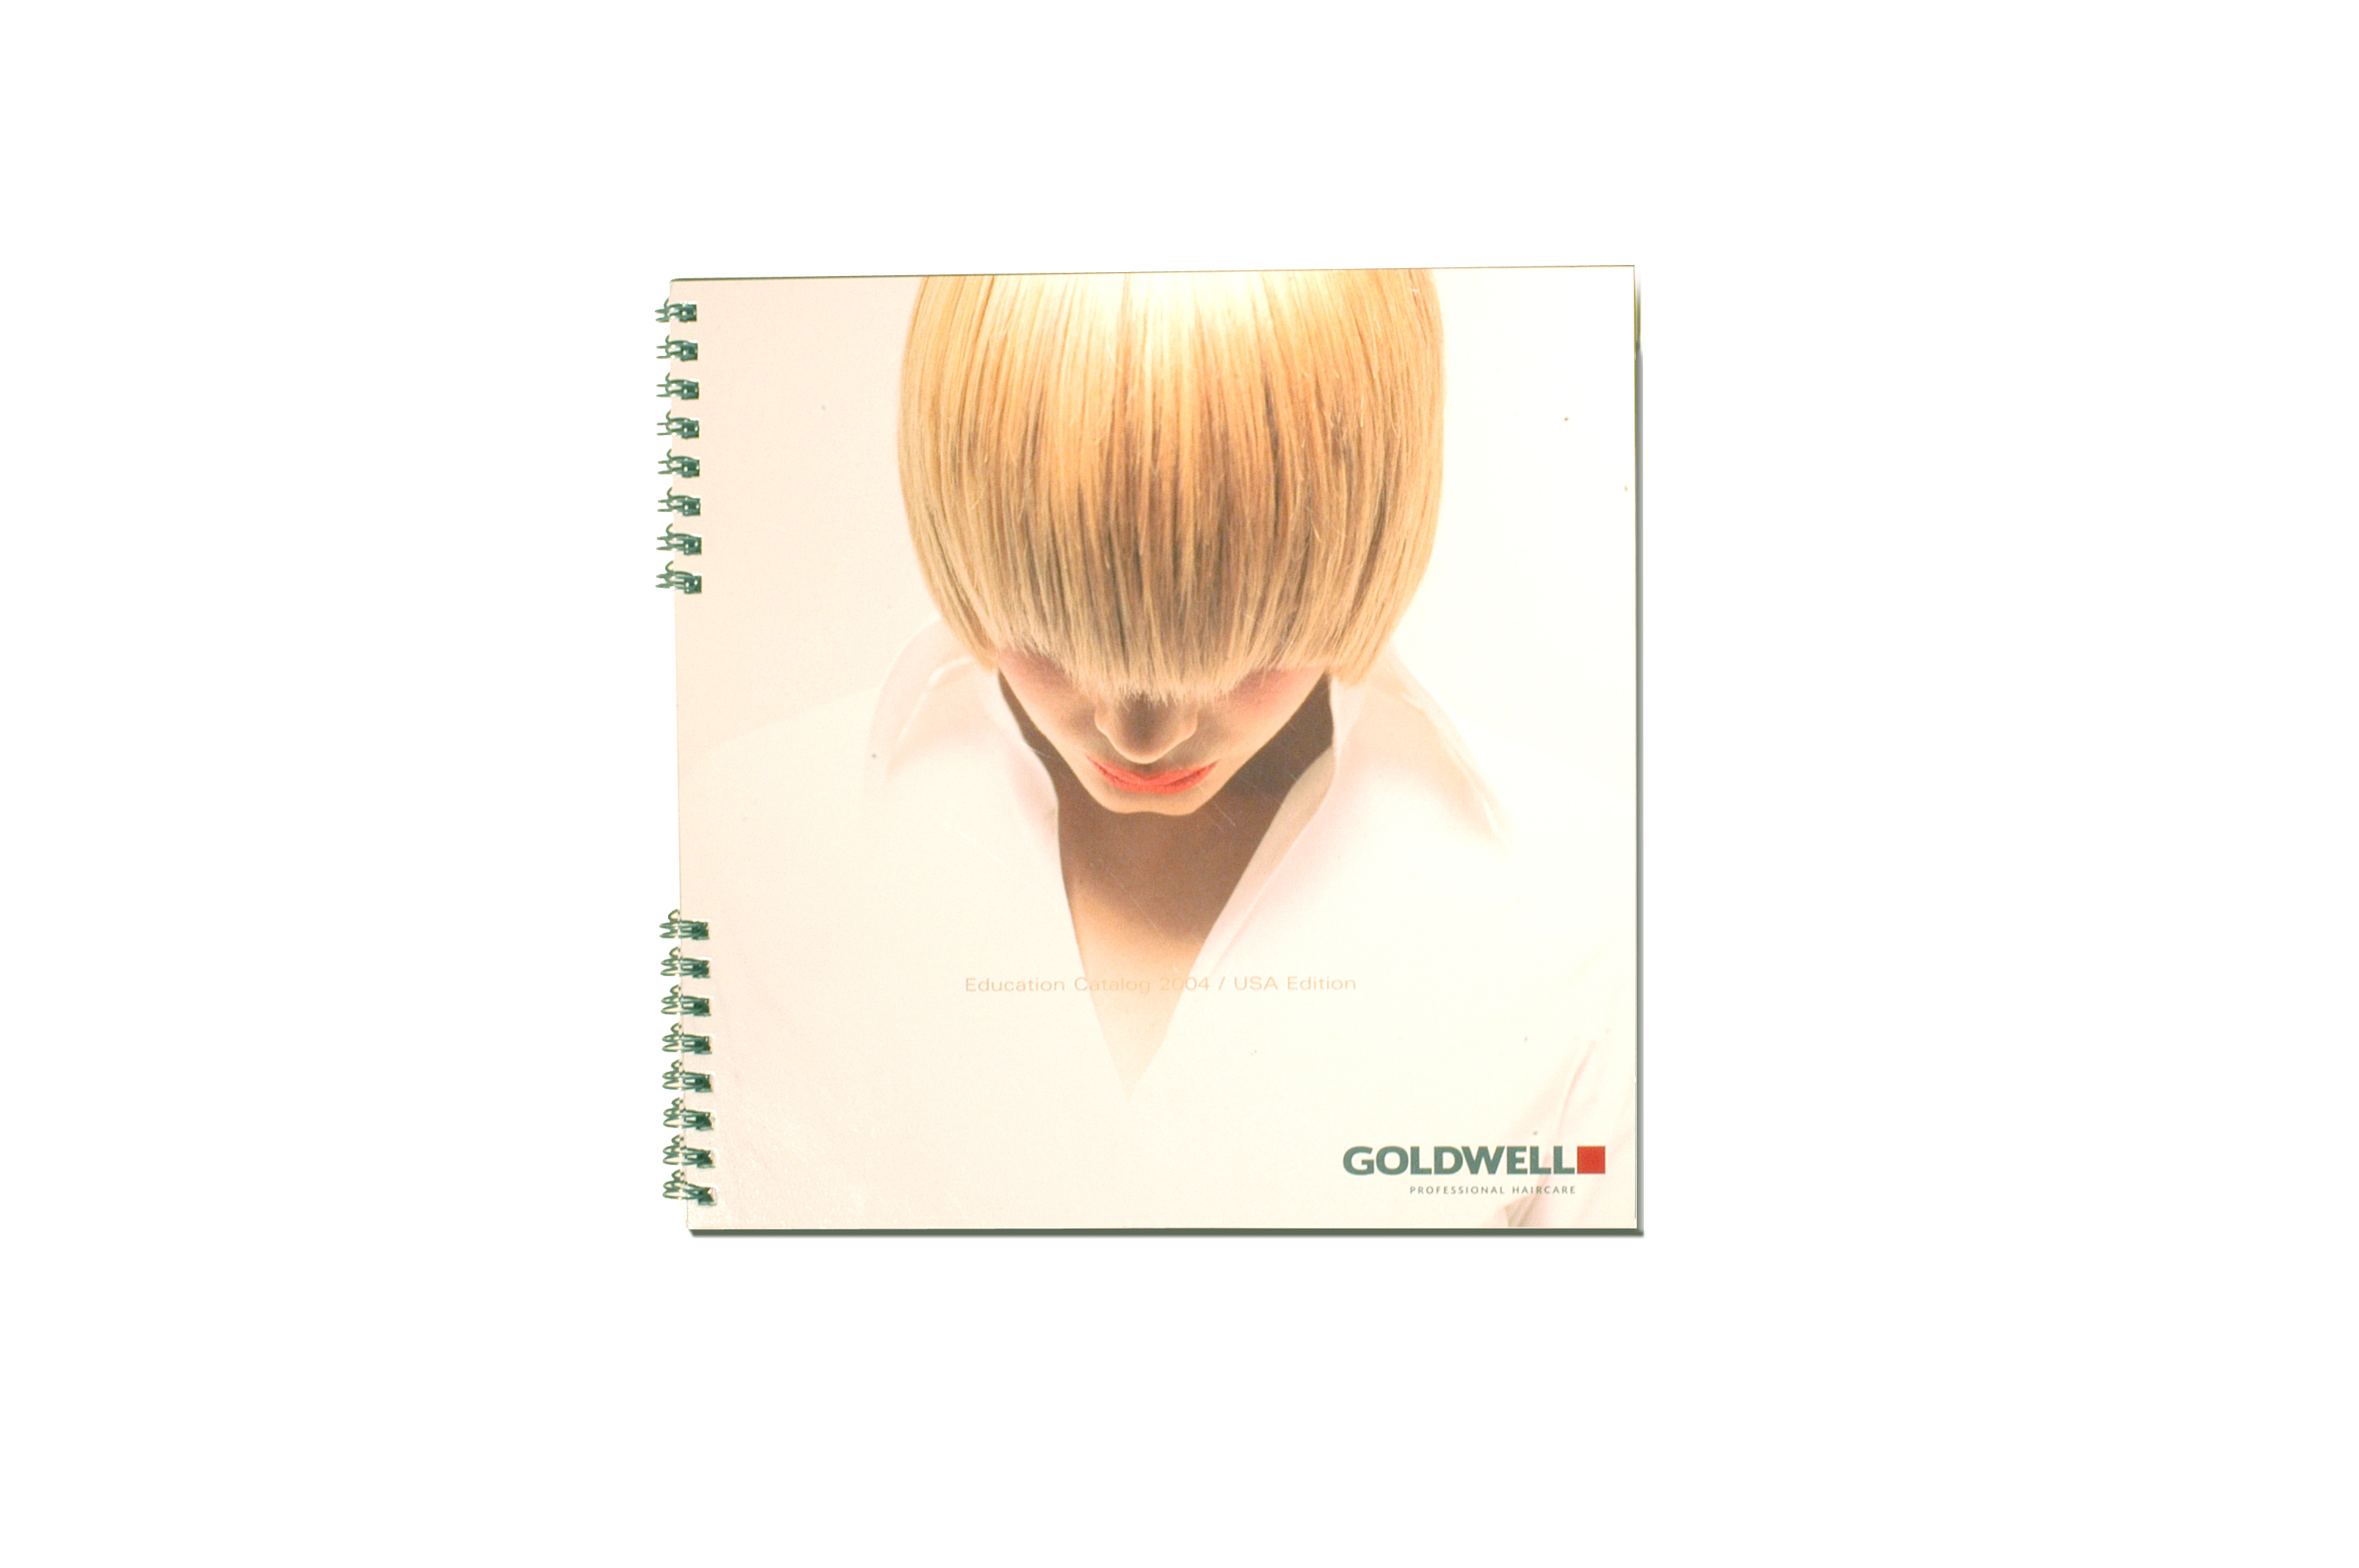 Goldwell Education